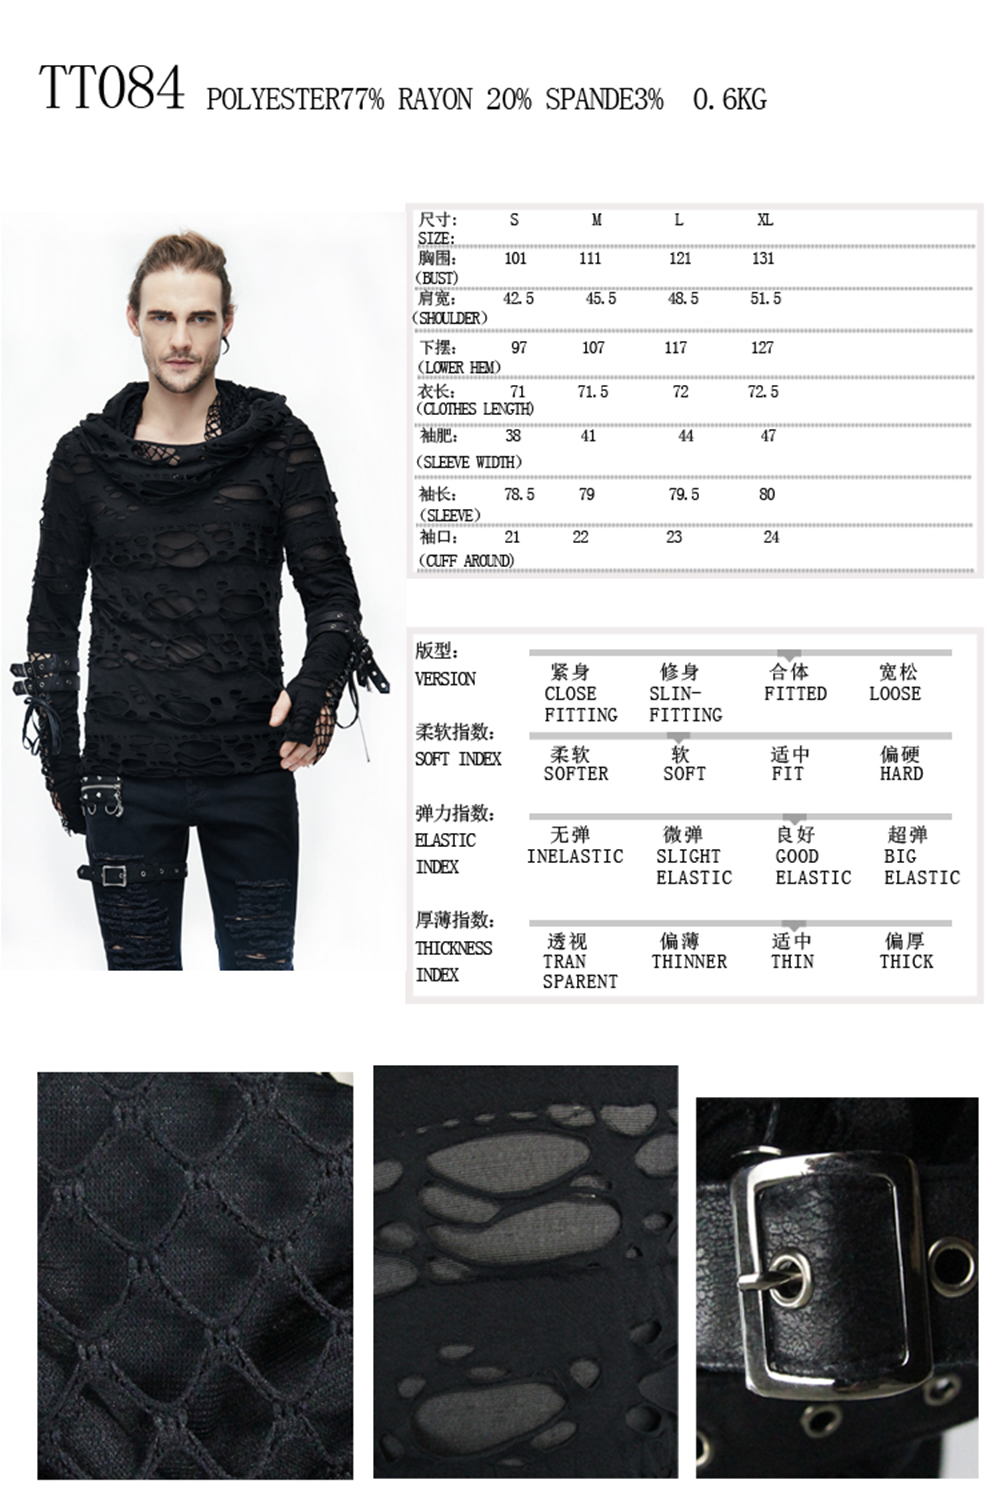 Devil Fashion Men's Punk Rock Long Sleeve with Hooded T Shirts Gothic Casual Mesh Hole Knit Top - 6